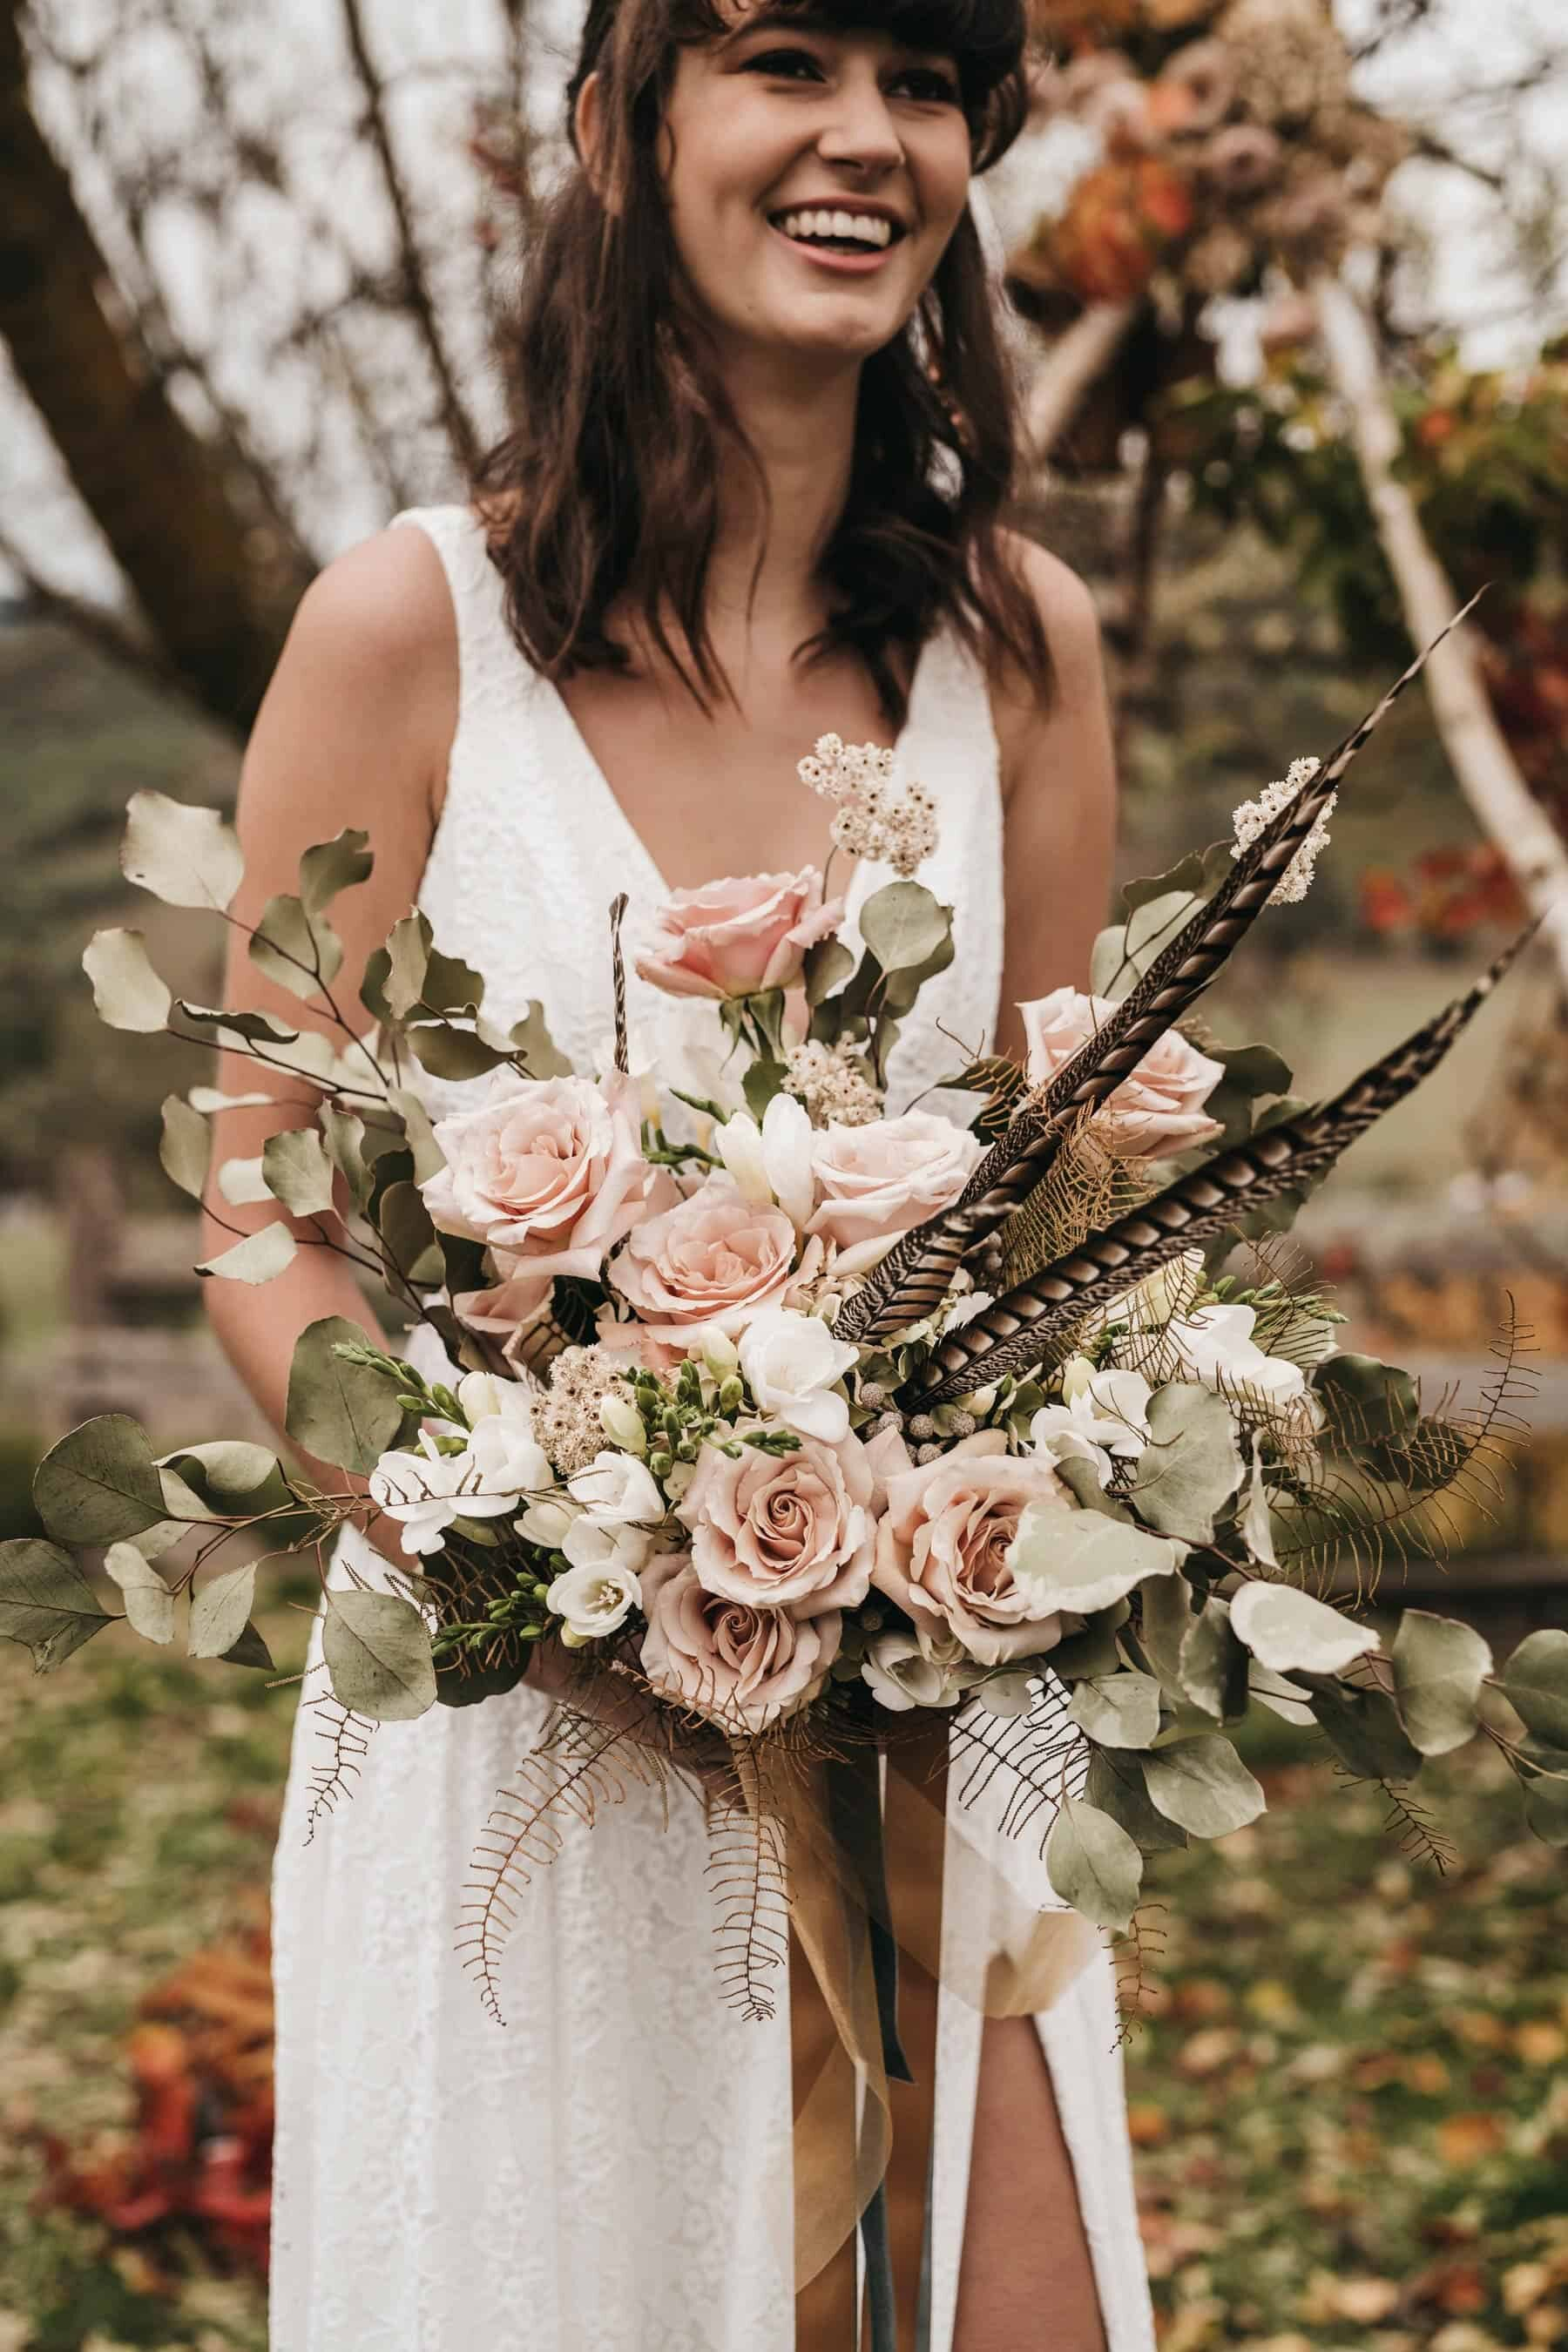 blush bridal bouquet with feathers